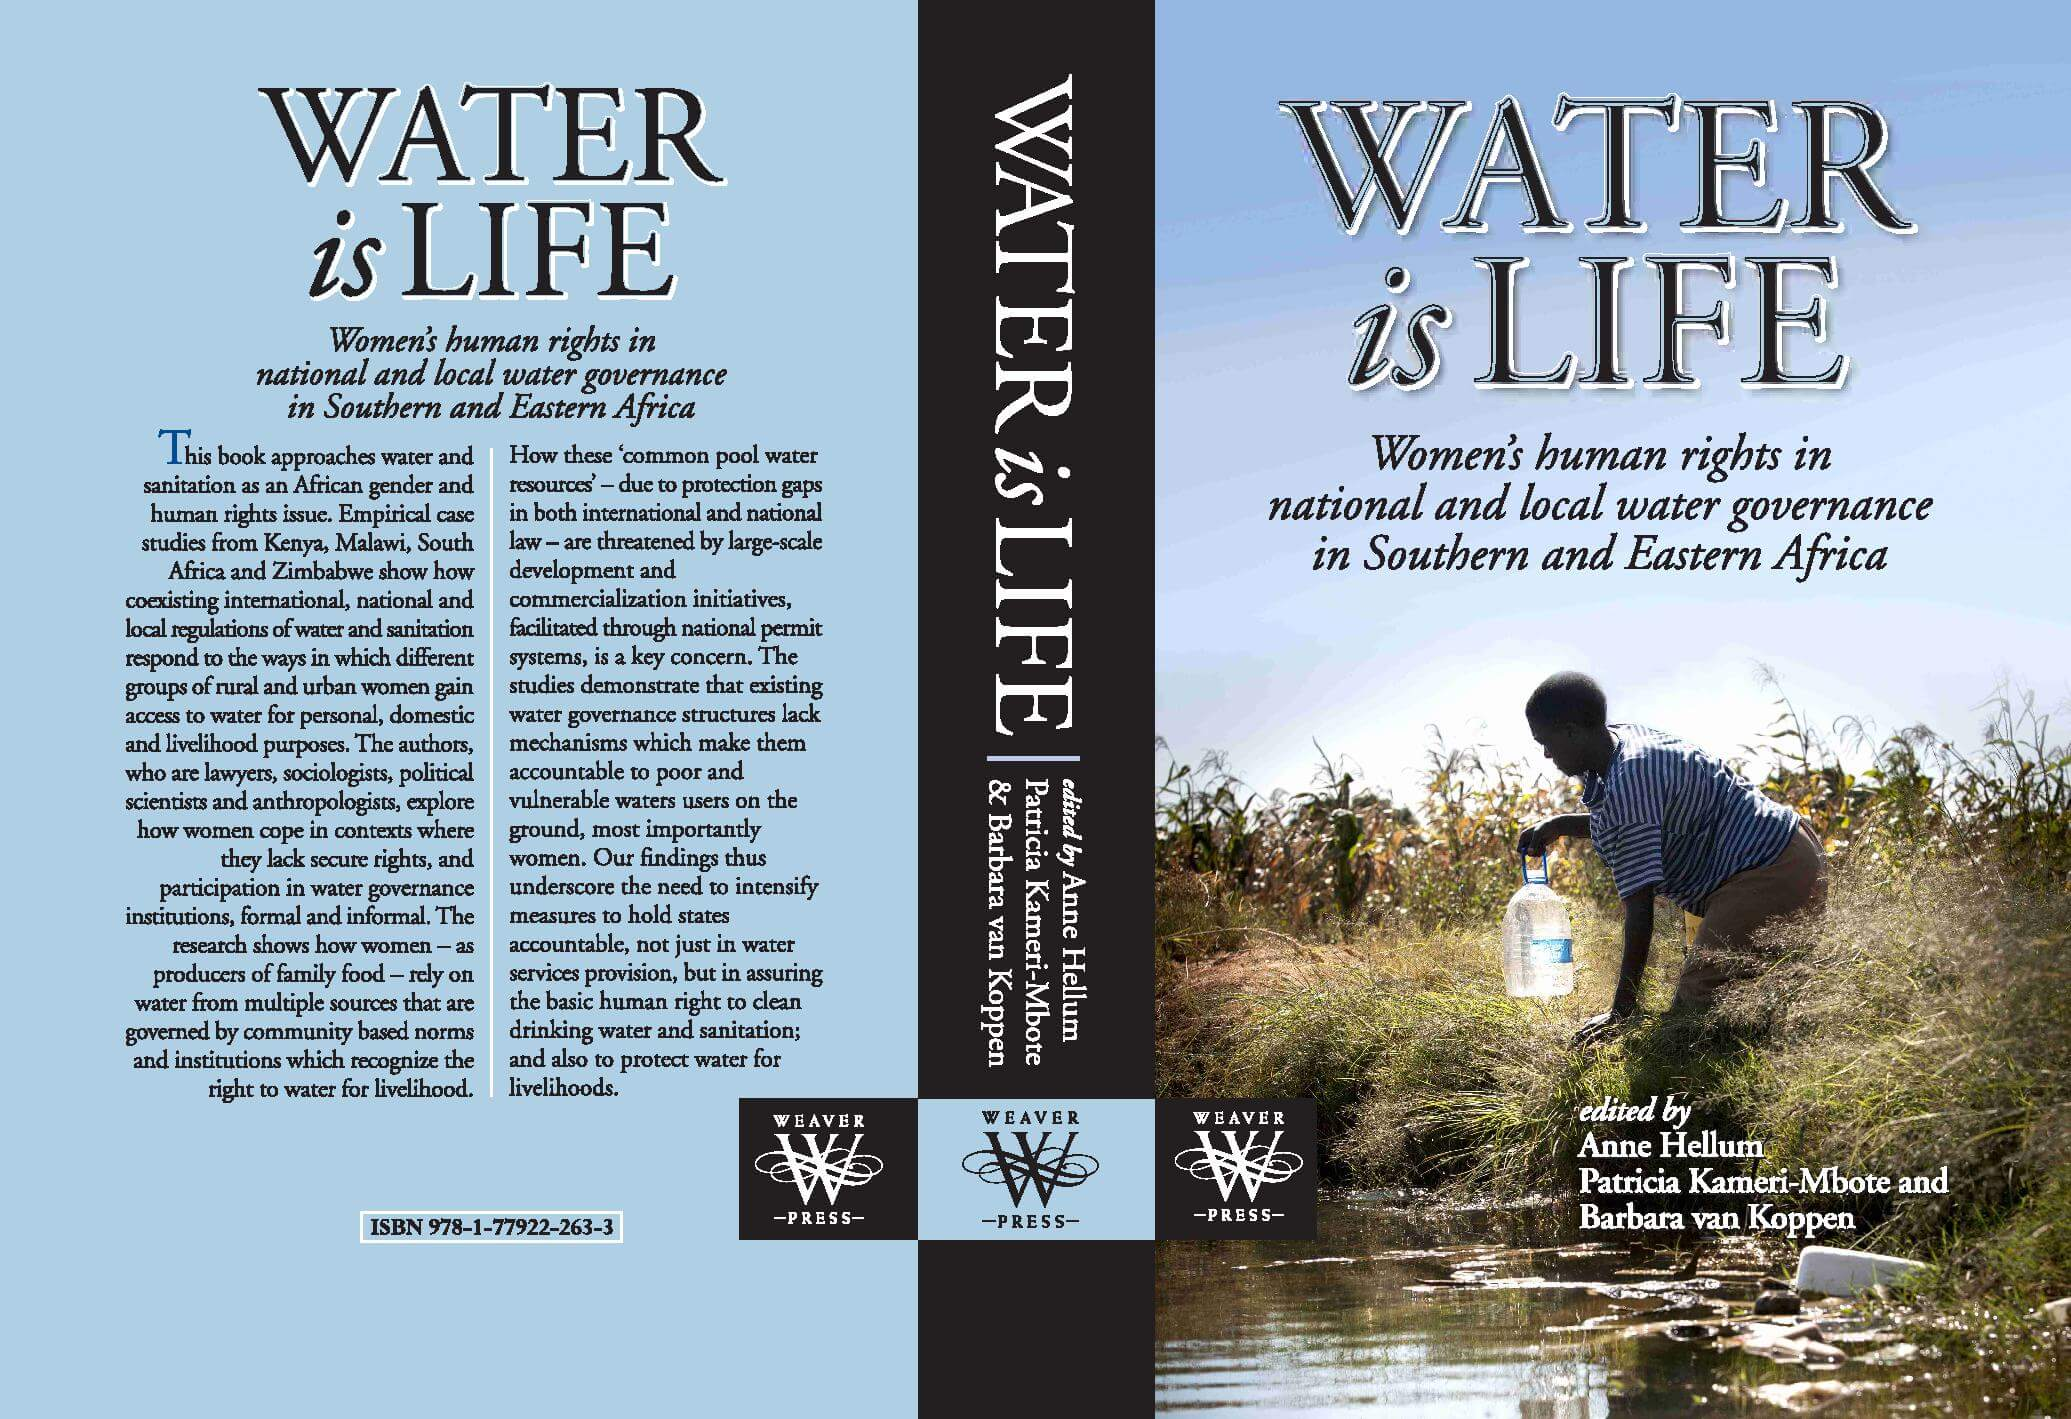 New Publication: Water is Life: Women's Rights in National and Local Water Governance in Eastern and Southern Africa